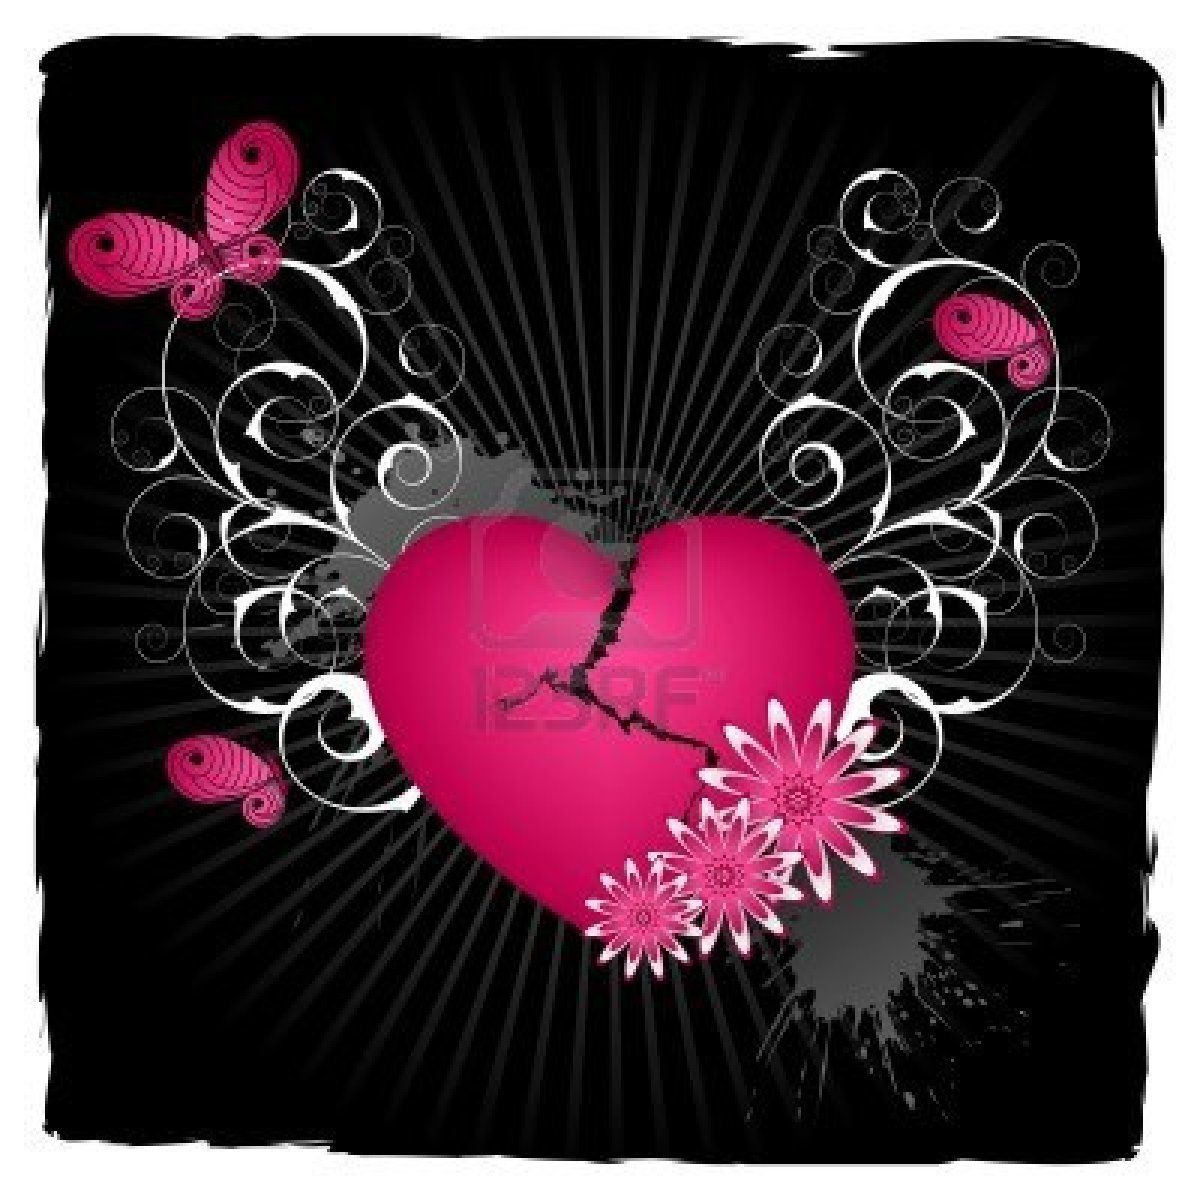 4453970-emo-background-with-heart-and-flowers.jpg (1200